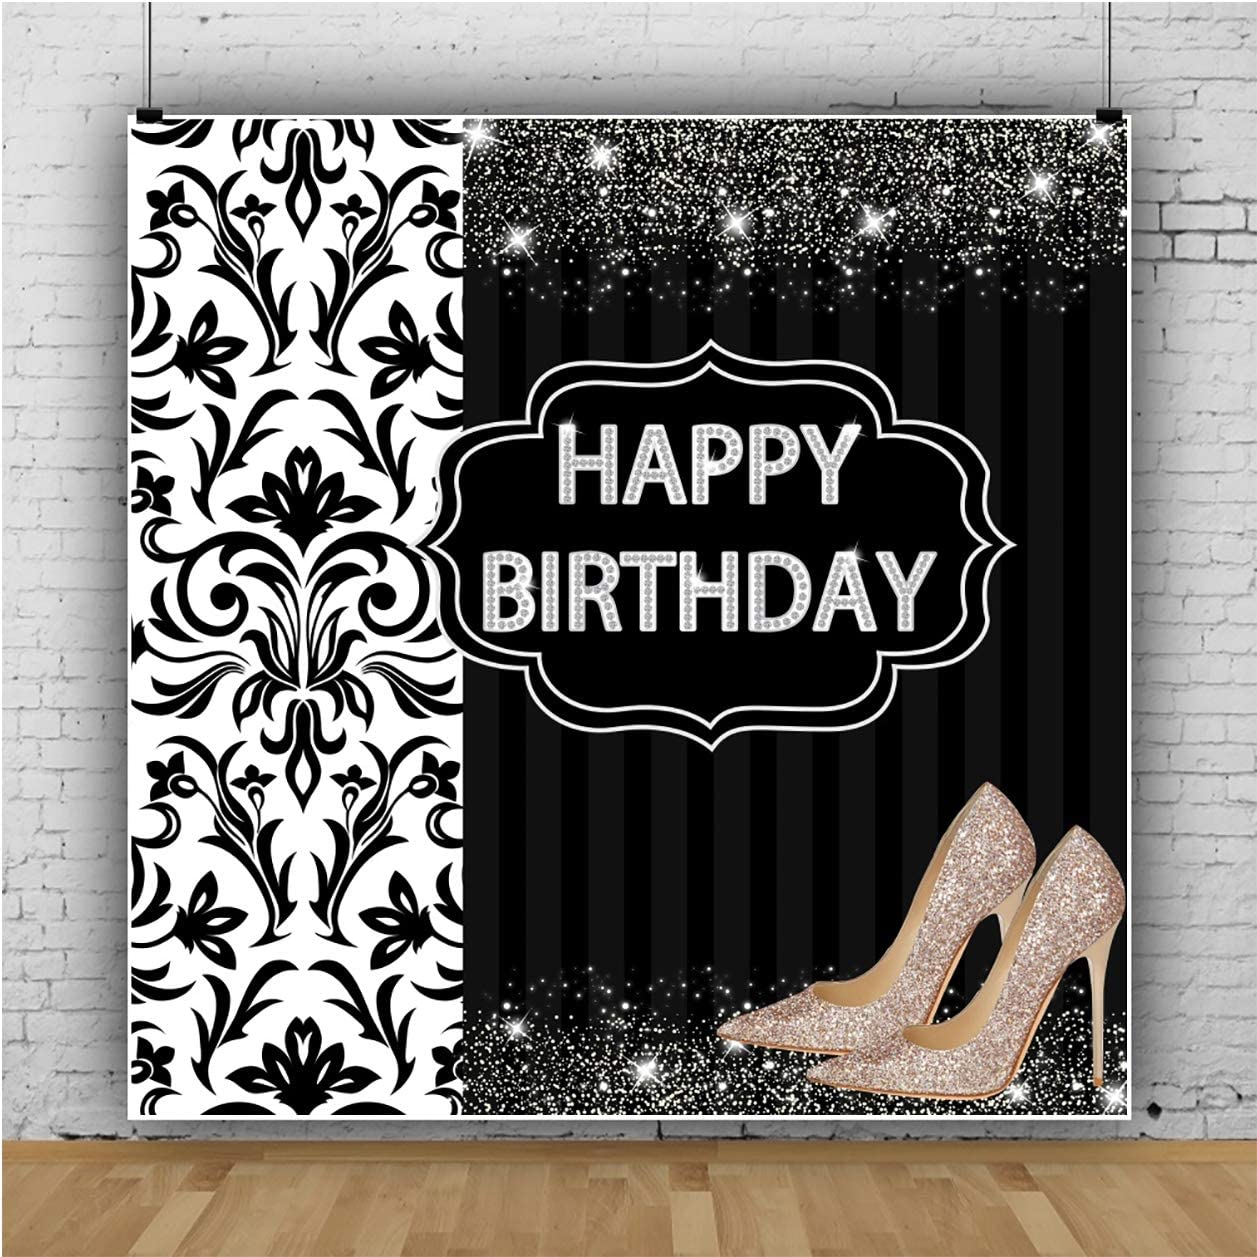 Red Hot heels Vinyl Backdrop for Hollywood theme,Photo Booth prop 7 Ft X 6 Ft Heels Birthday backdrop